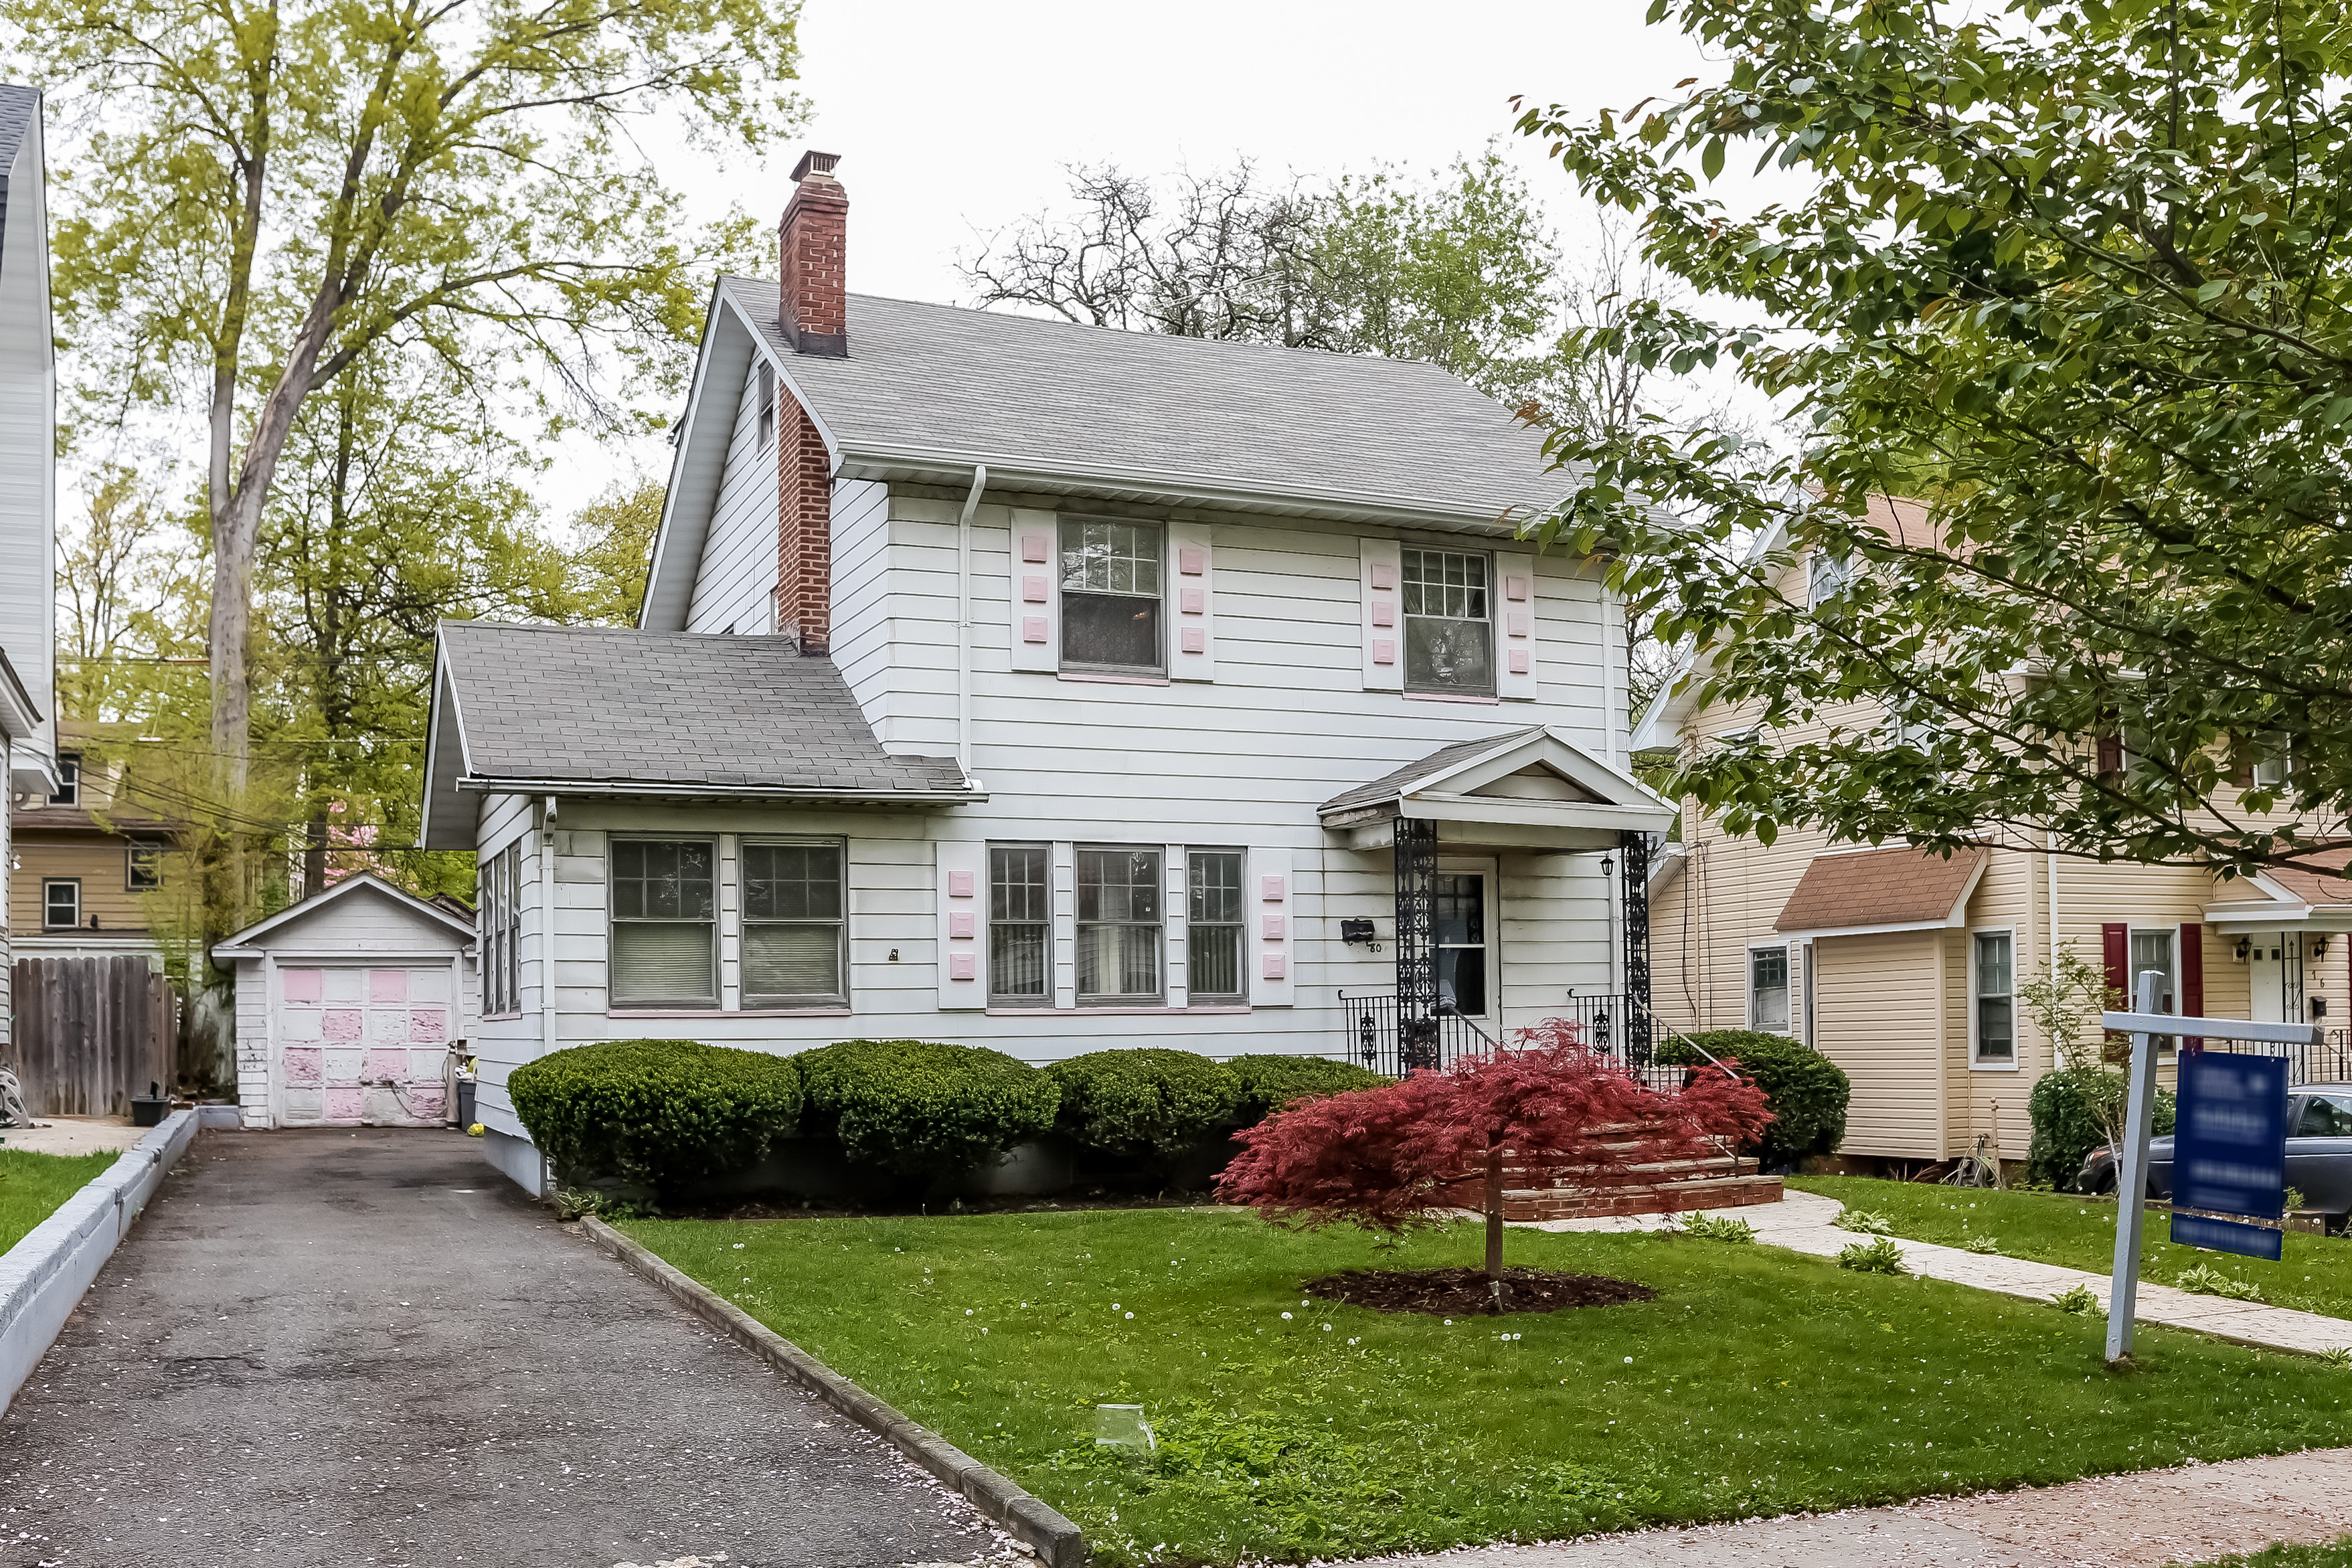 Single Family Home for Sale at Three Bedroom Colonial 80 Elliott Place East Orange, New Jersey 07018 United States